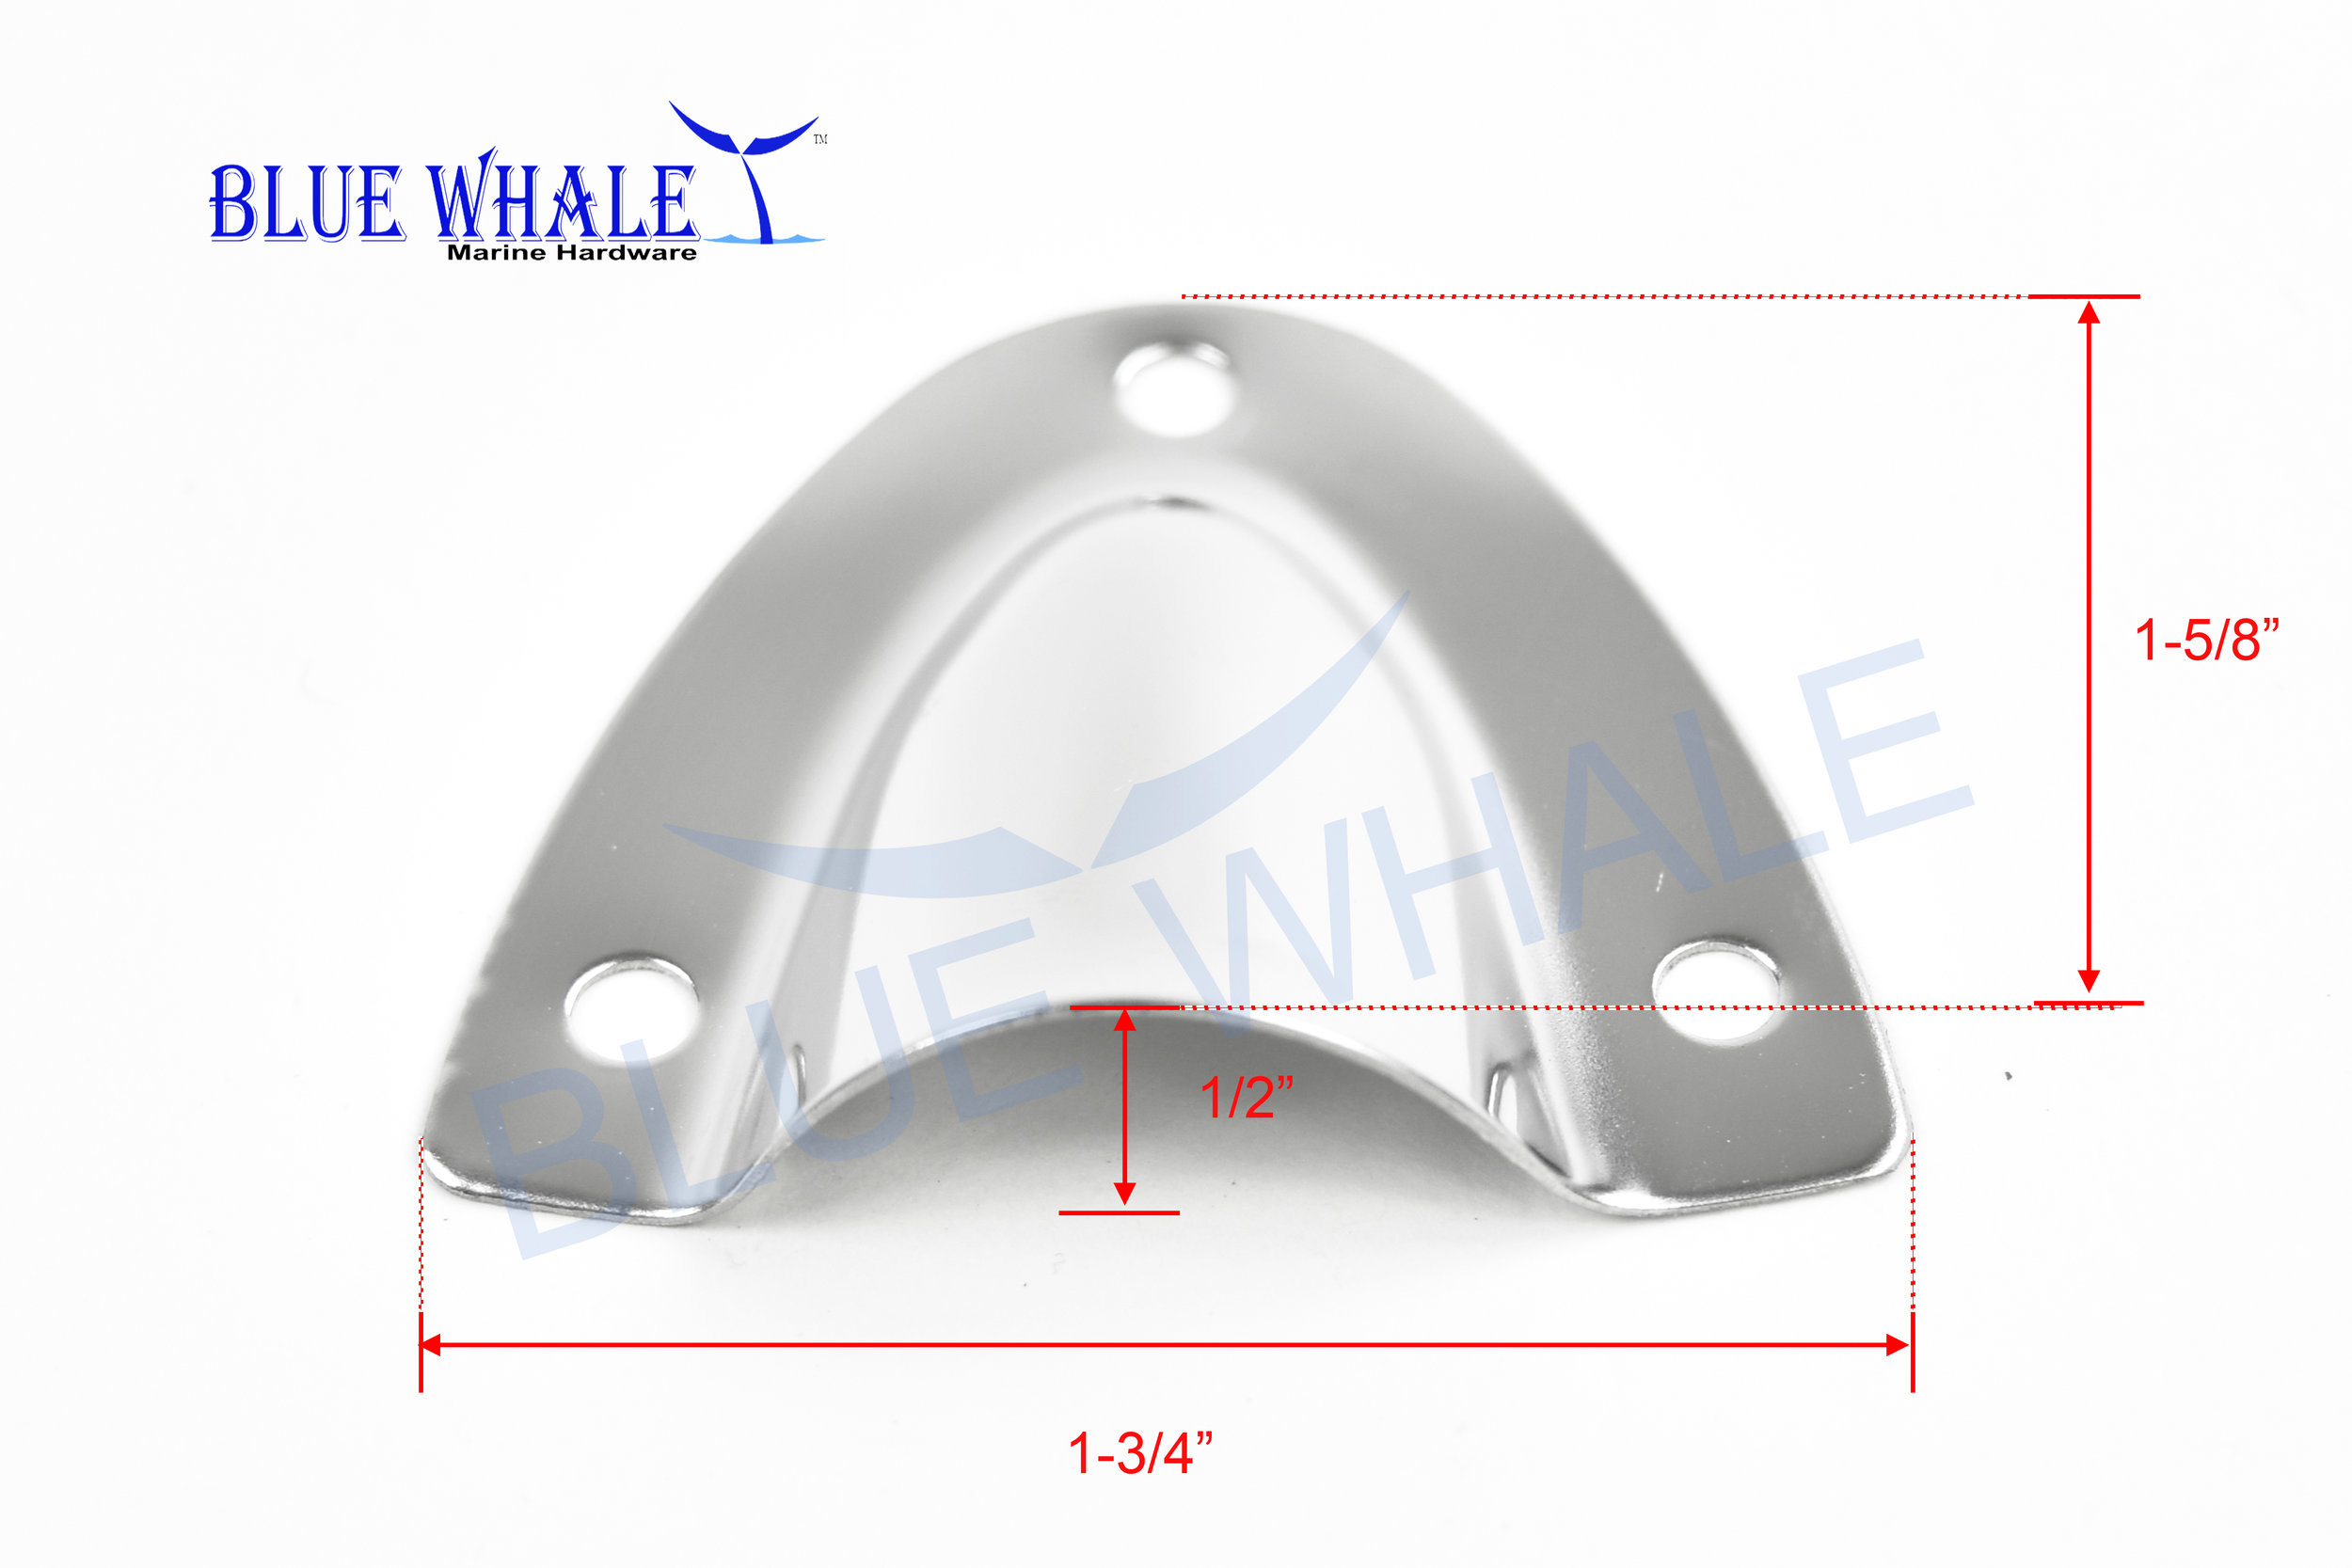 Boat Marine Stainless Steel Mini Clam Shell Vent Great for Wiring 1-3//4 X 1-5//8